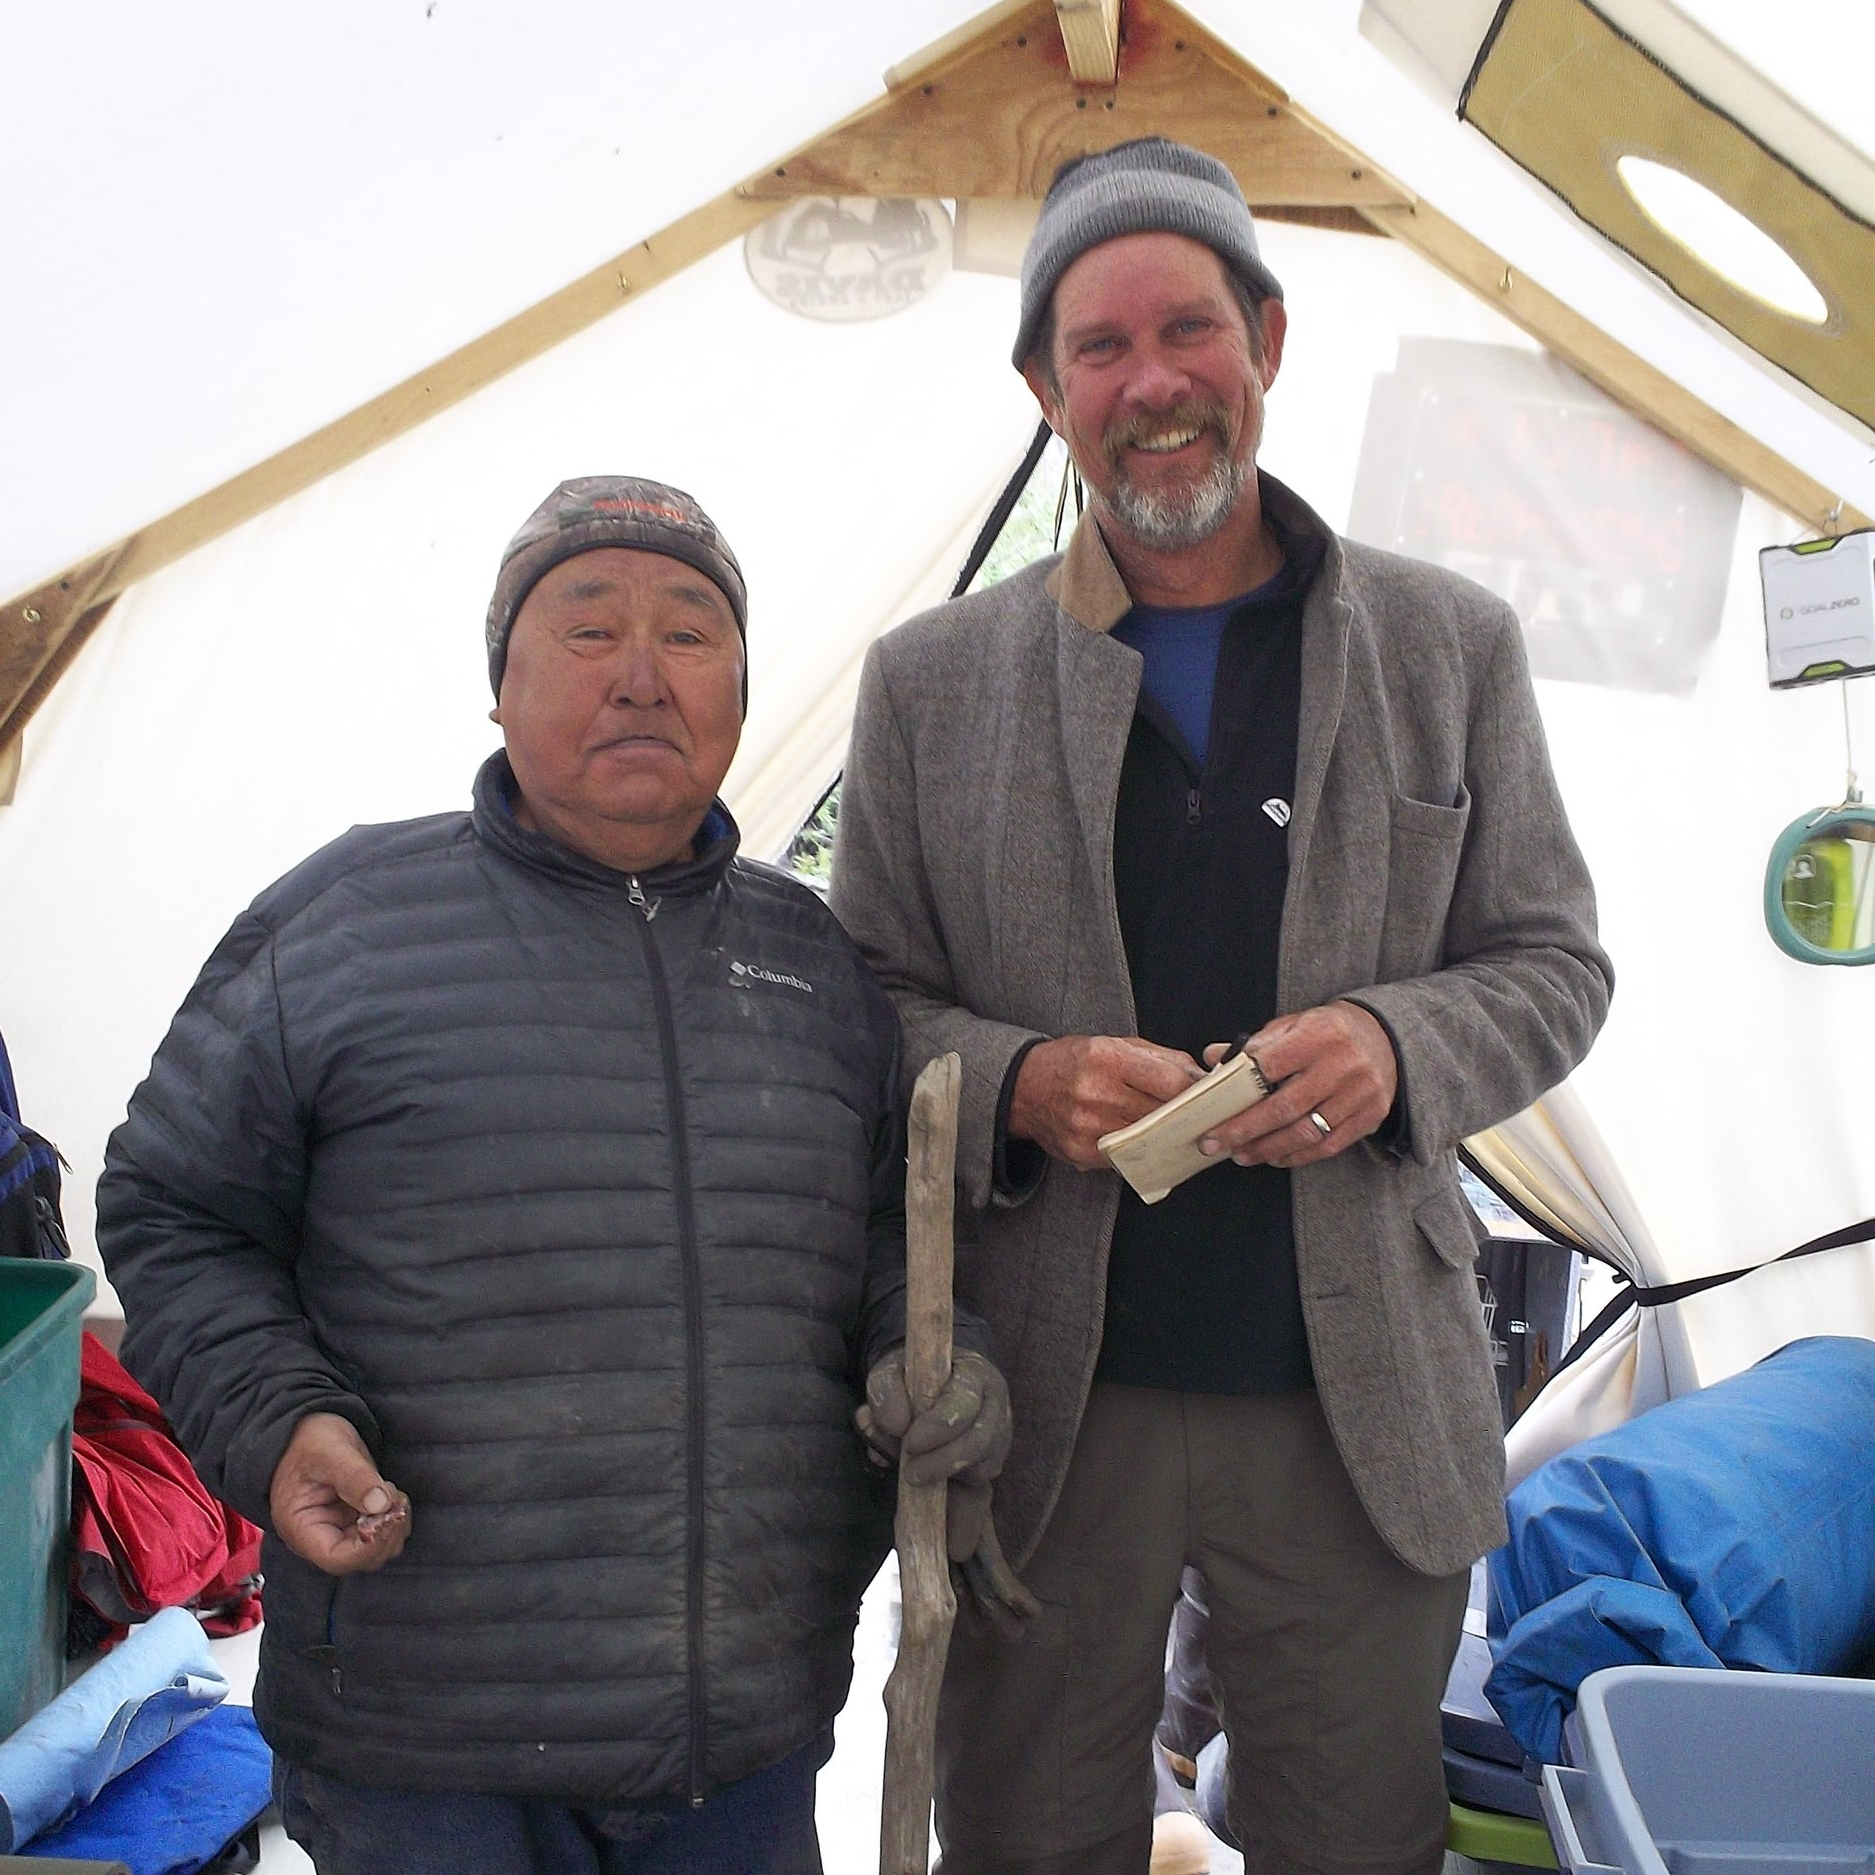 This guy, Gordon, was speaking Yupik and wanted to buy my spork but it wasn't for sale. Truhn put a sausage in his pocket on his way off the boat.